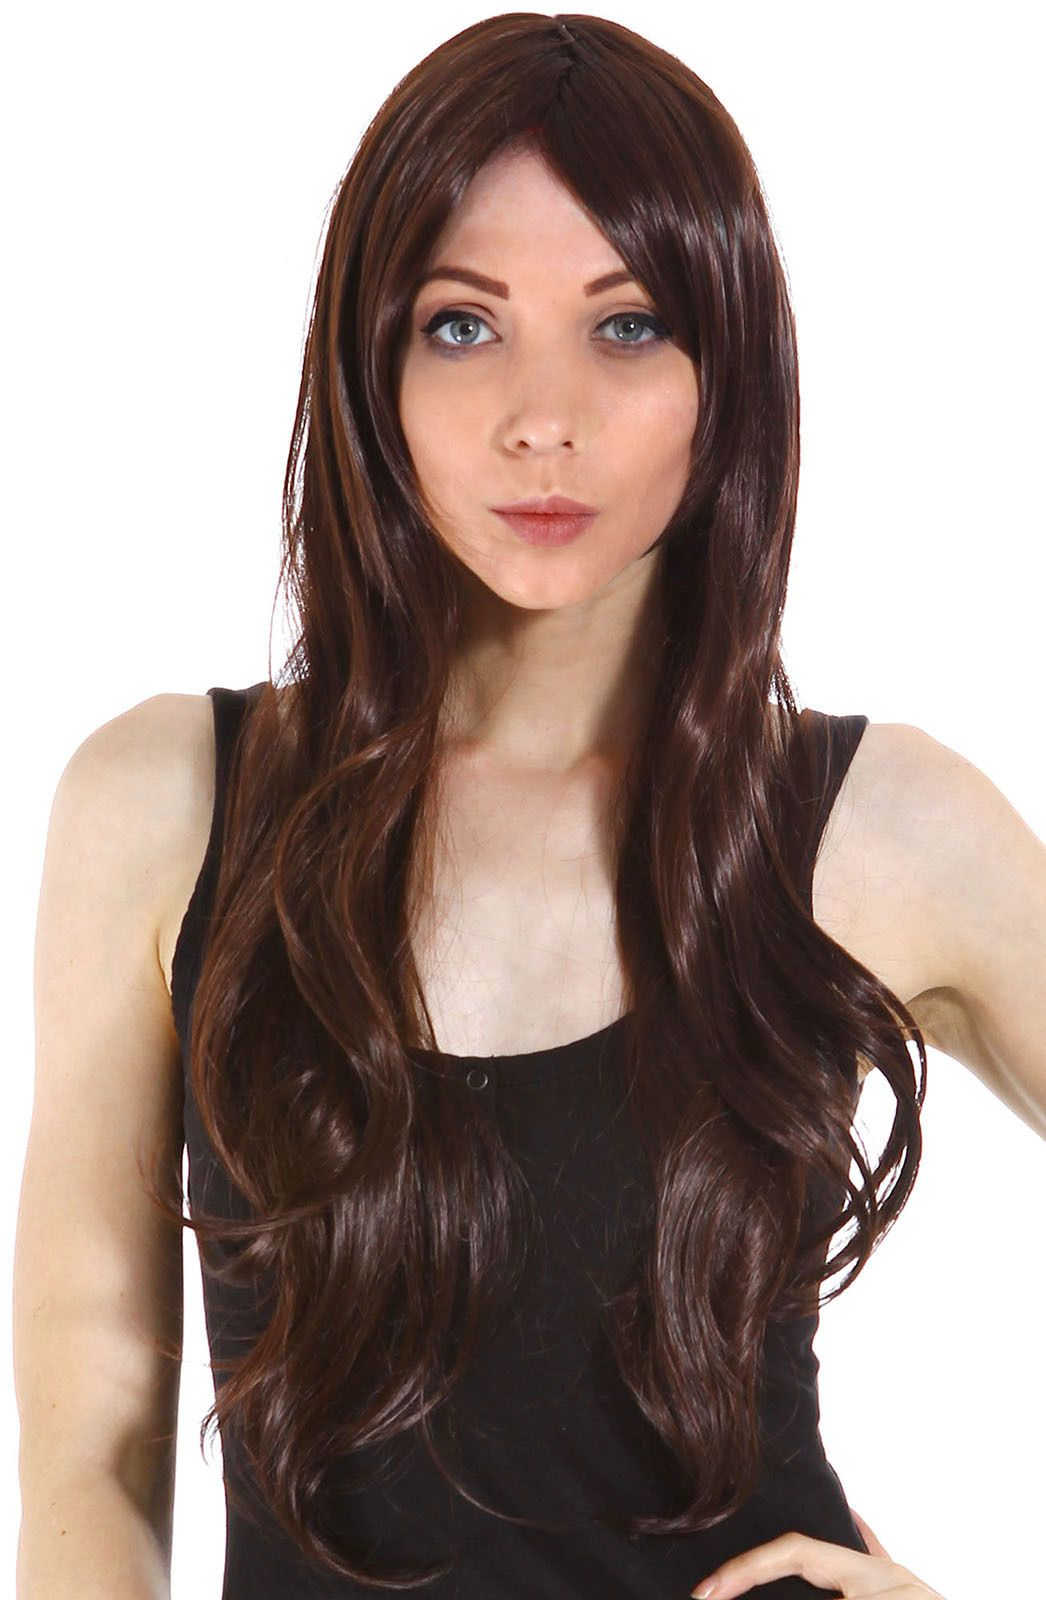 Details about full wig long curly straight full hair wigs